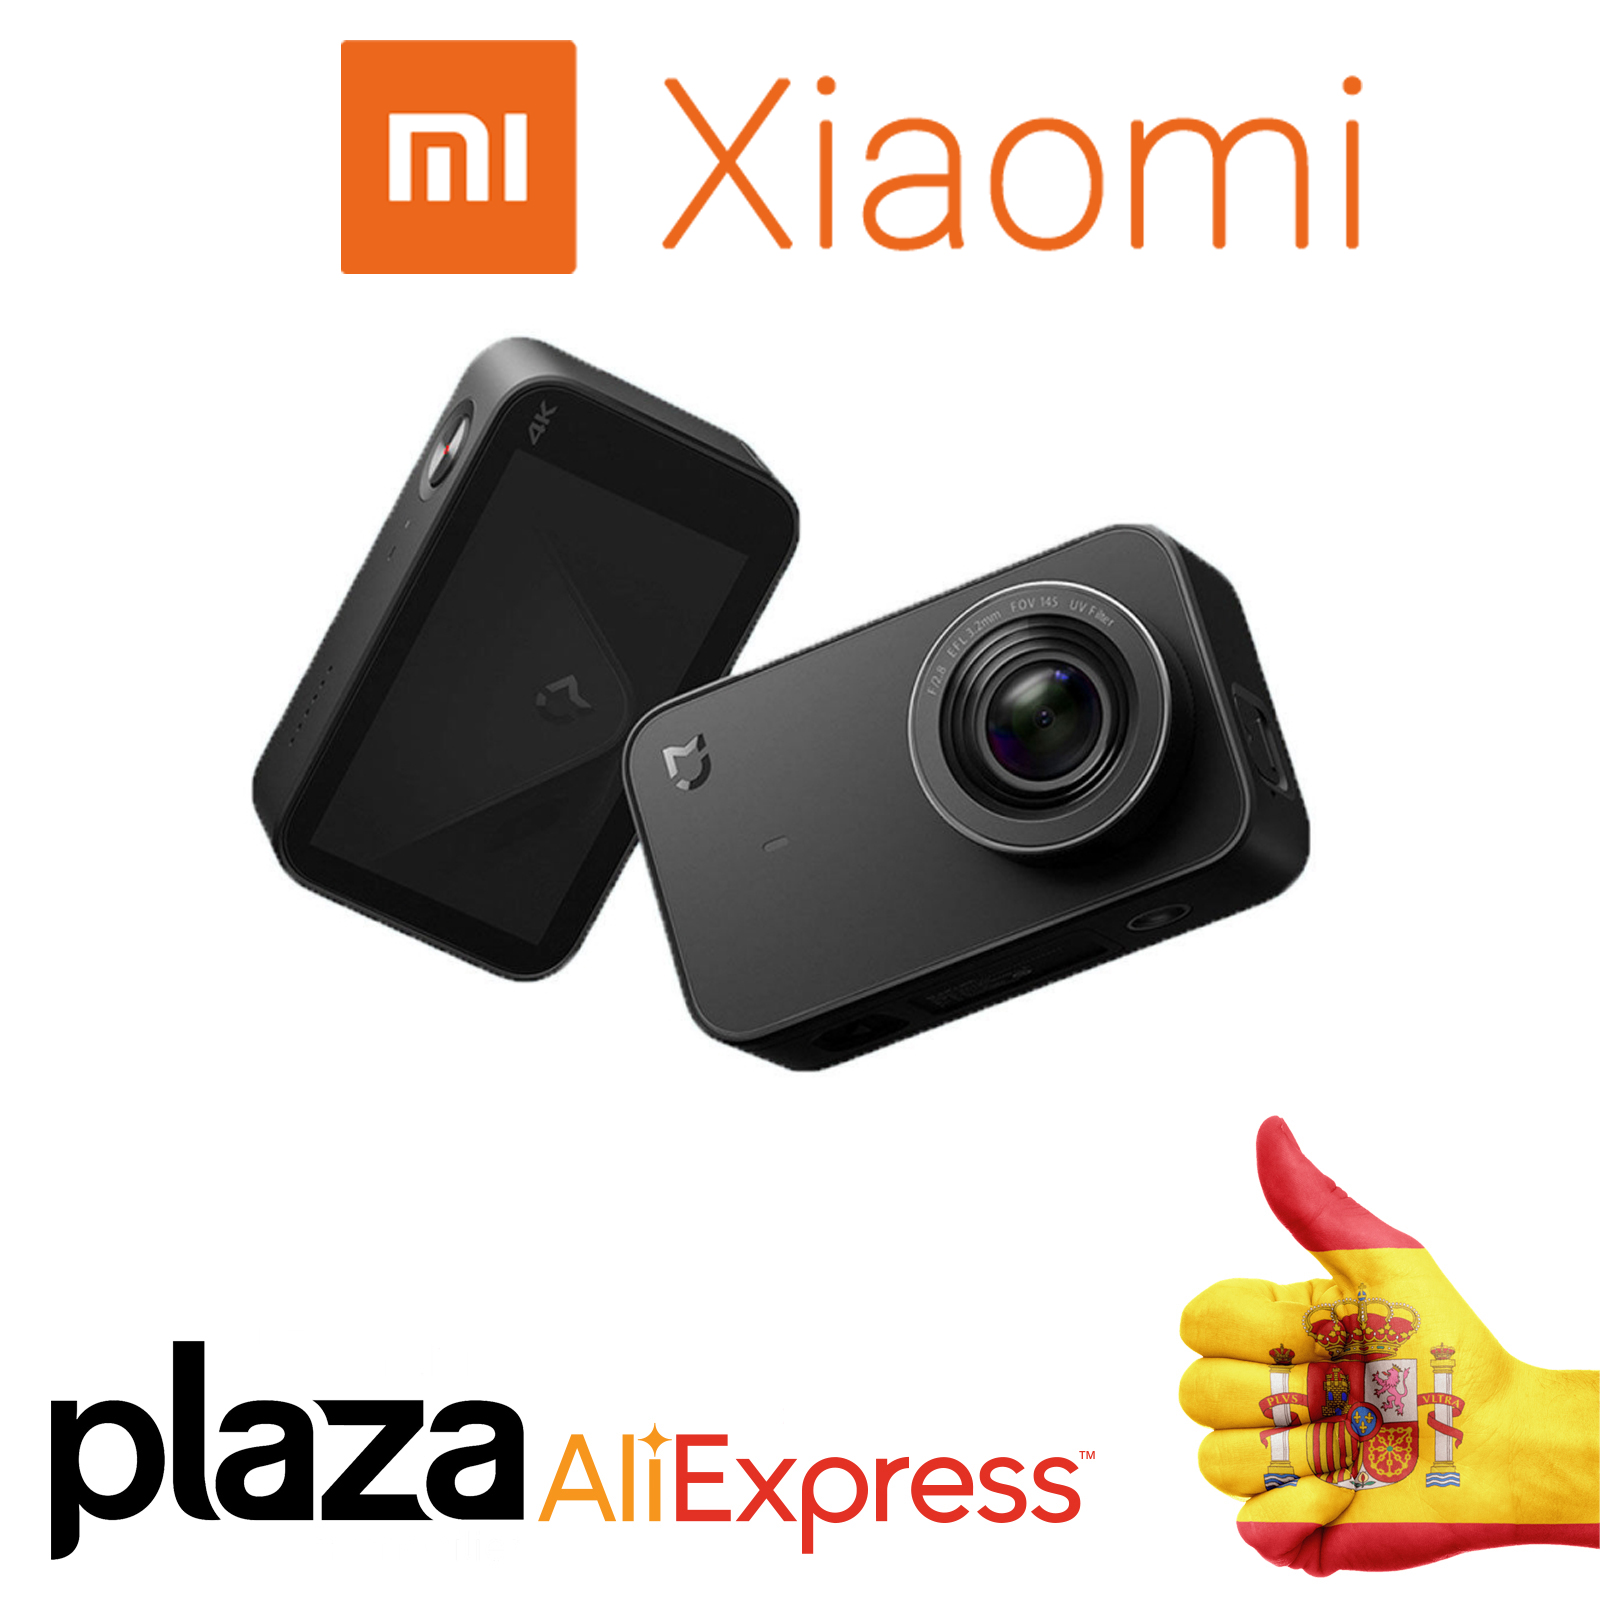 "Xiaomi MiJia mini 4K Action Camera Video 2.4 ""Touch Screen 30 FPS 145 angle Bluetooth WiFi My home app